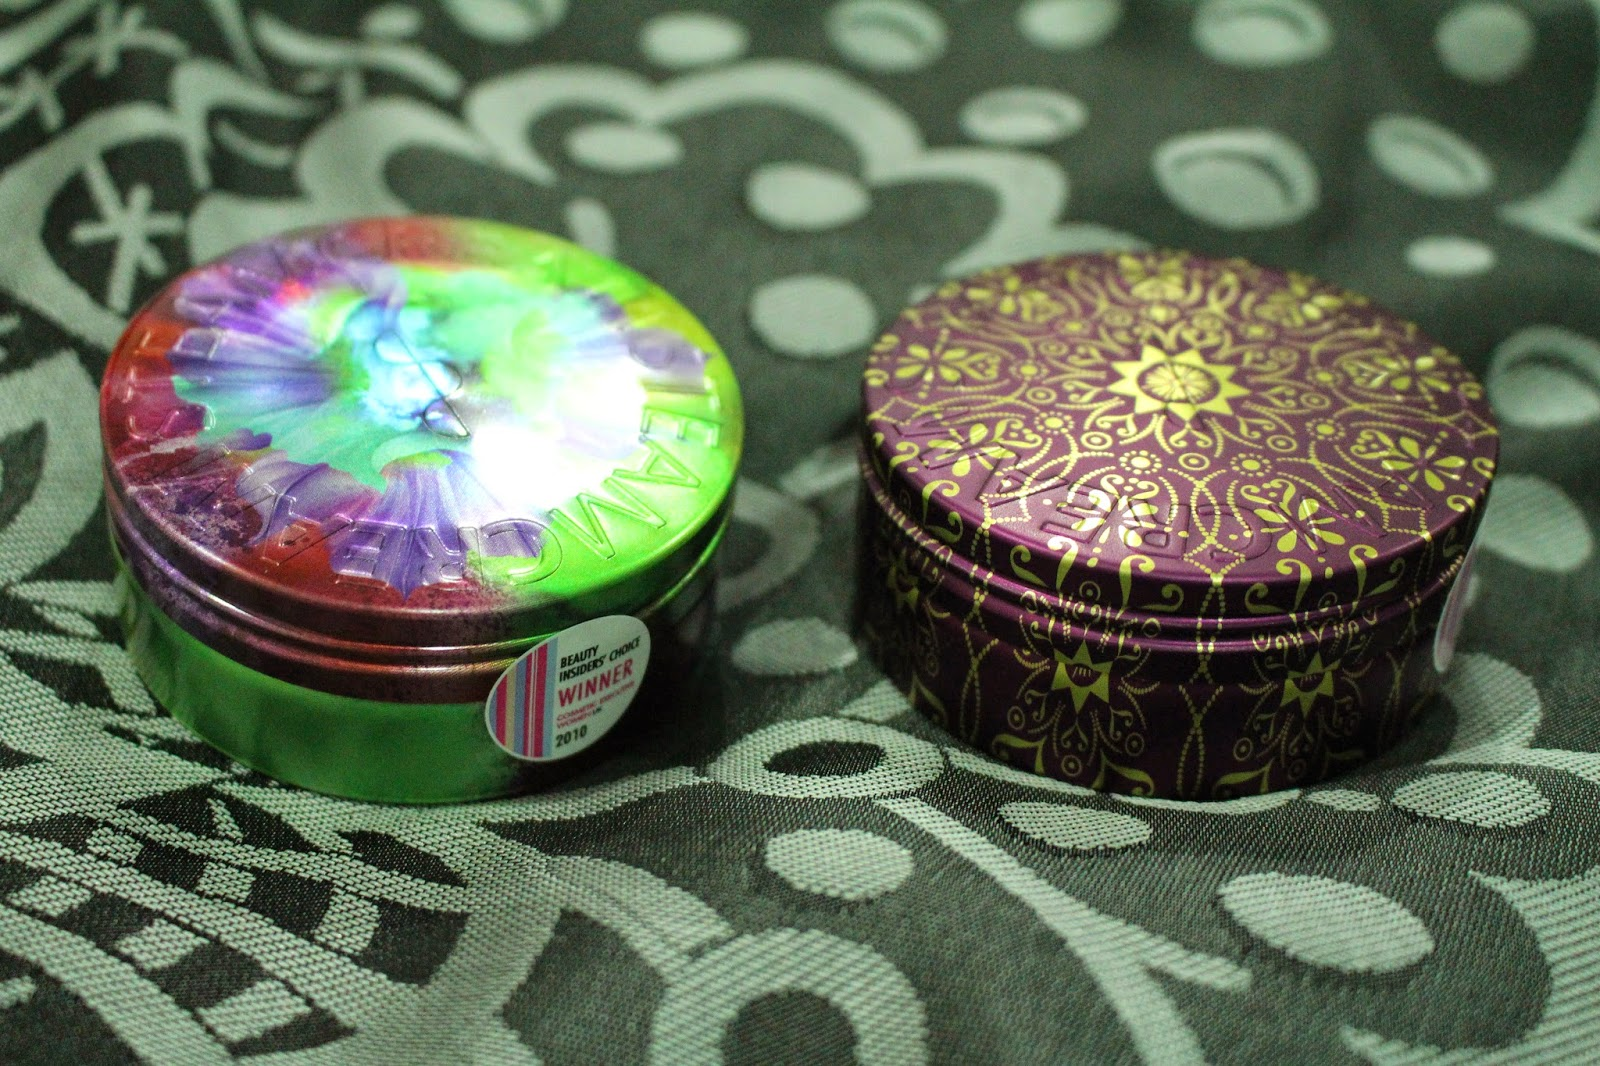 Steamcream in Envy Tin and Ekaterina Tin